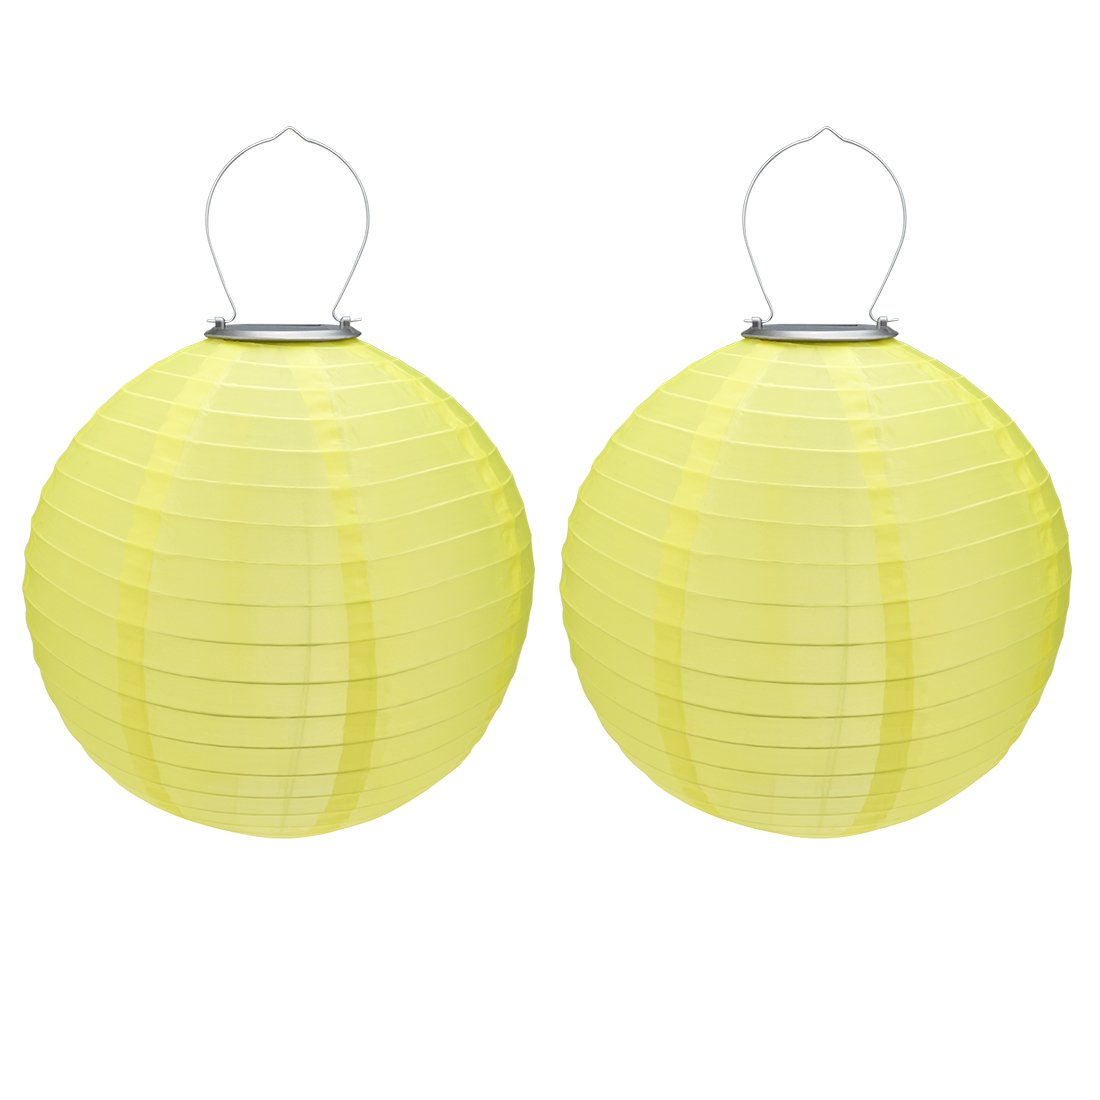 uxcell 2 Packs Yellow 10'' Solar Powered Lanterns Hanging Solar Lamps for Garden